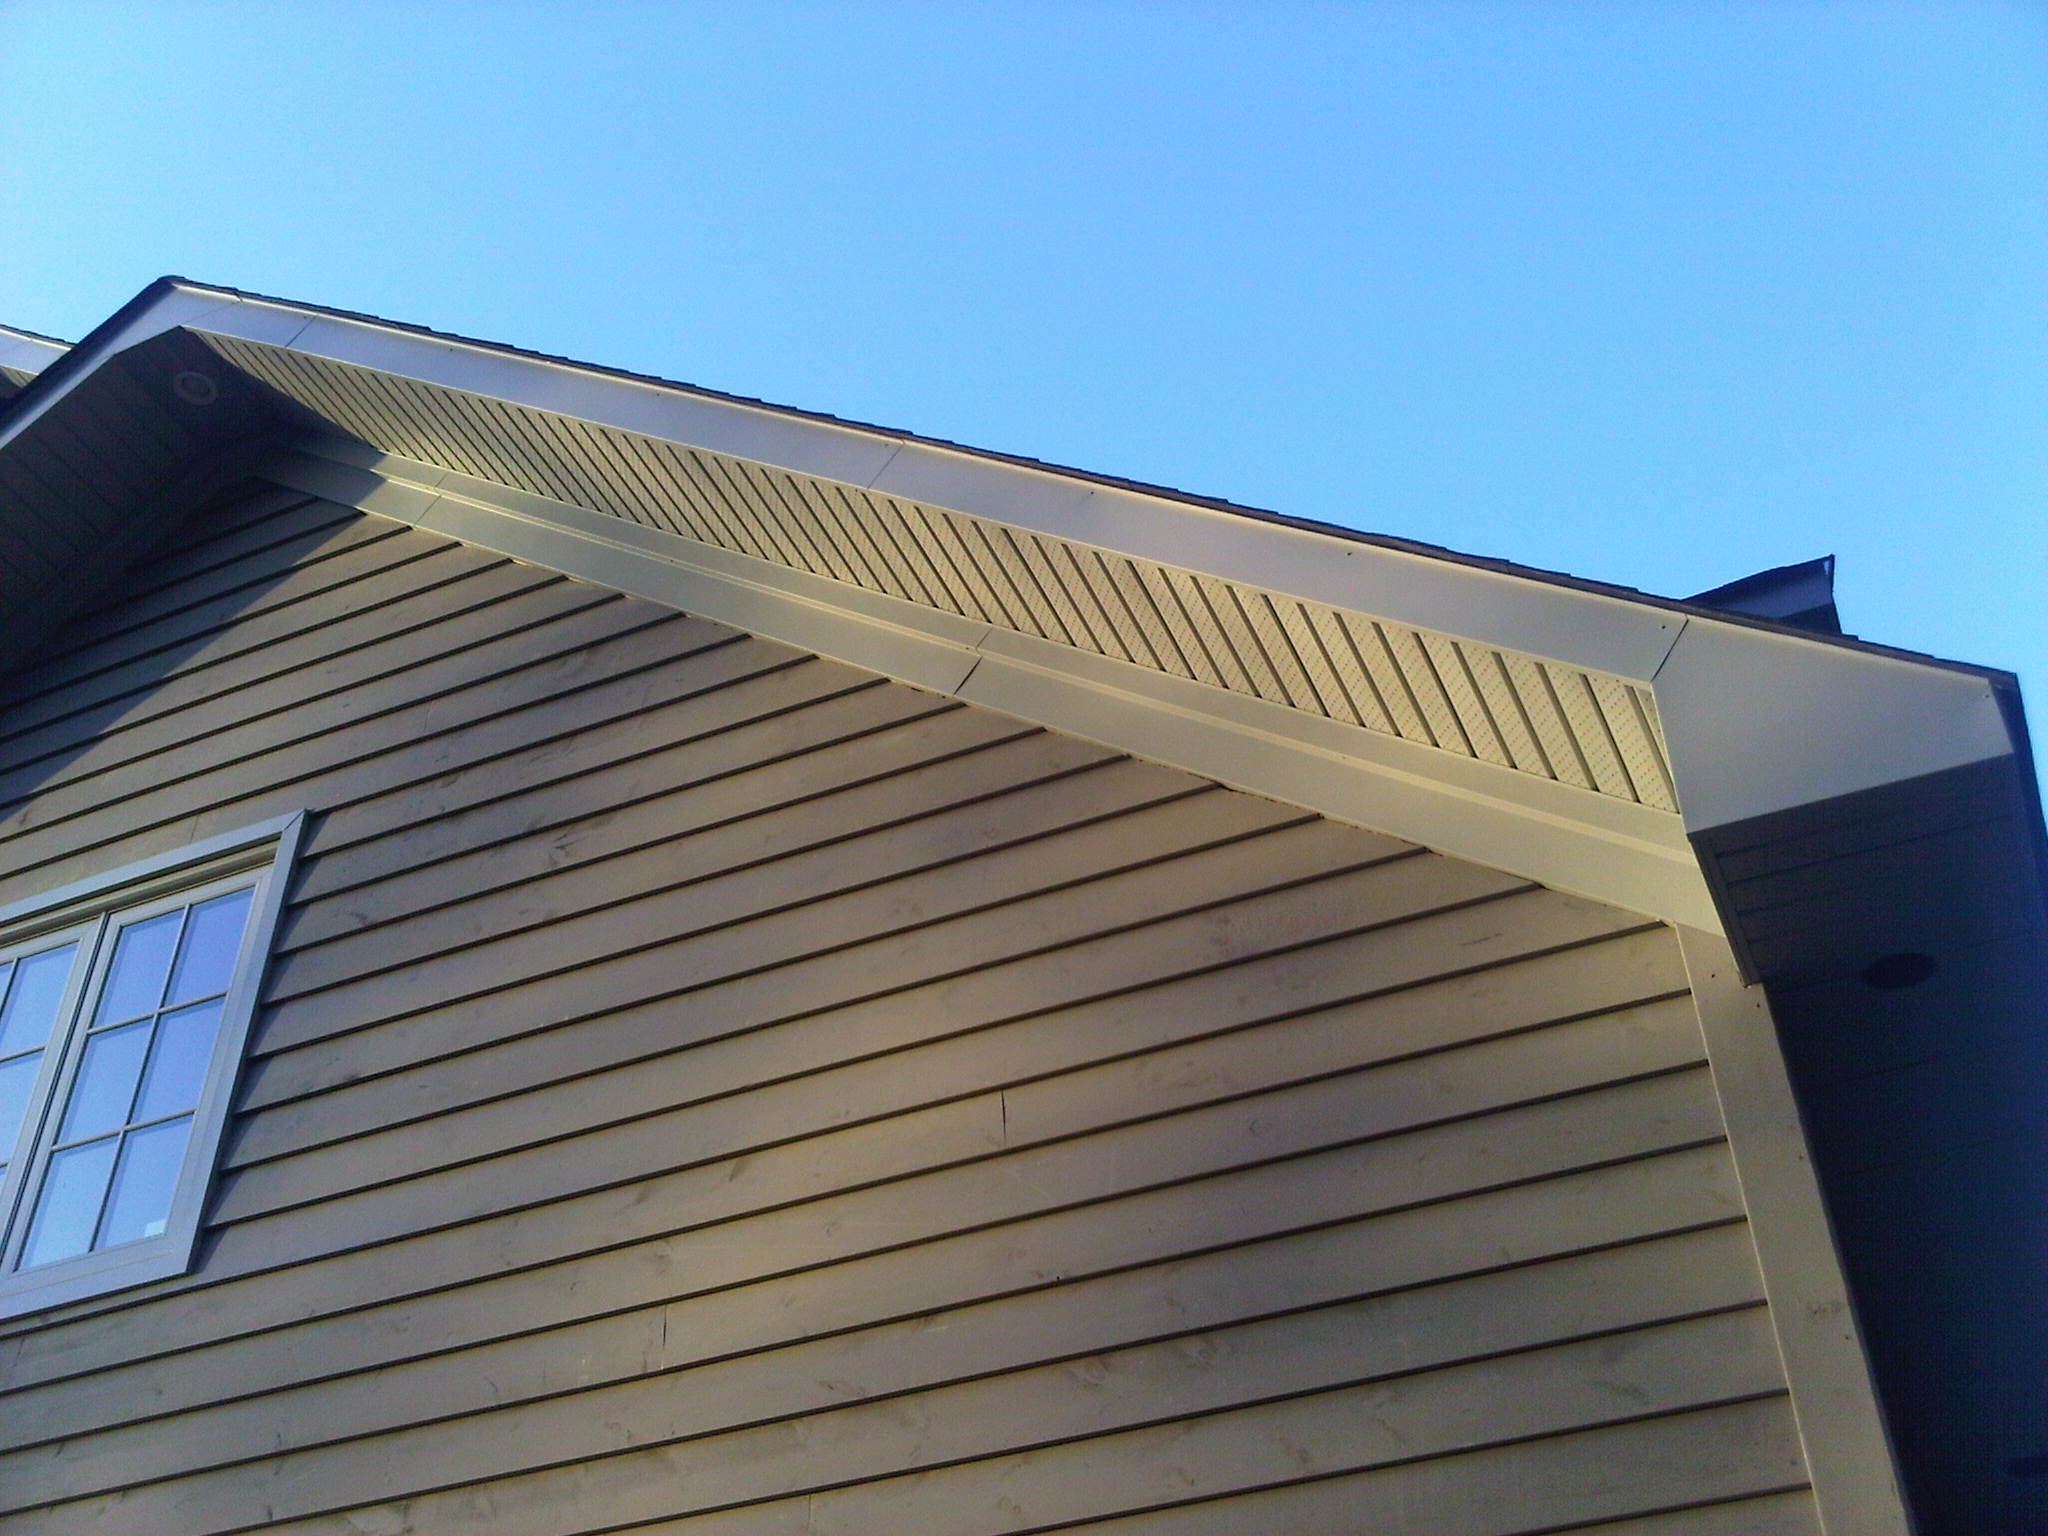 siding and roof